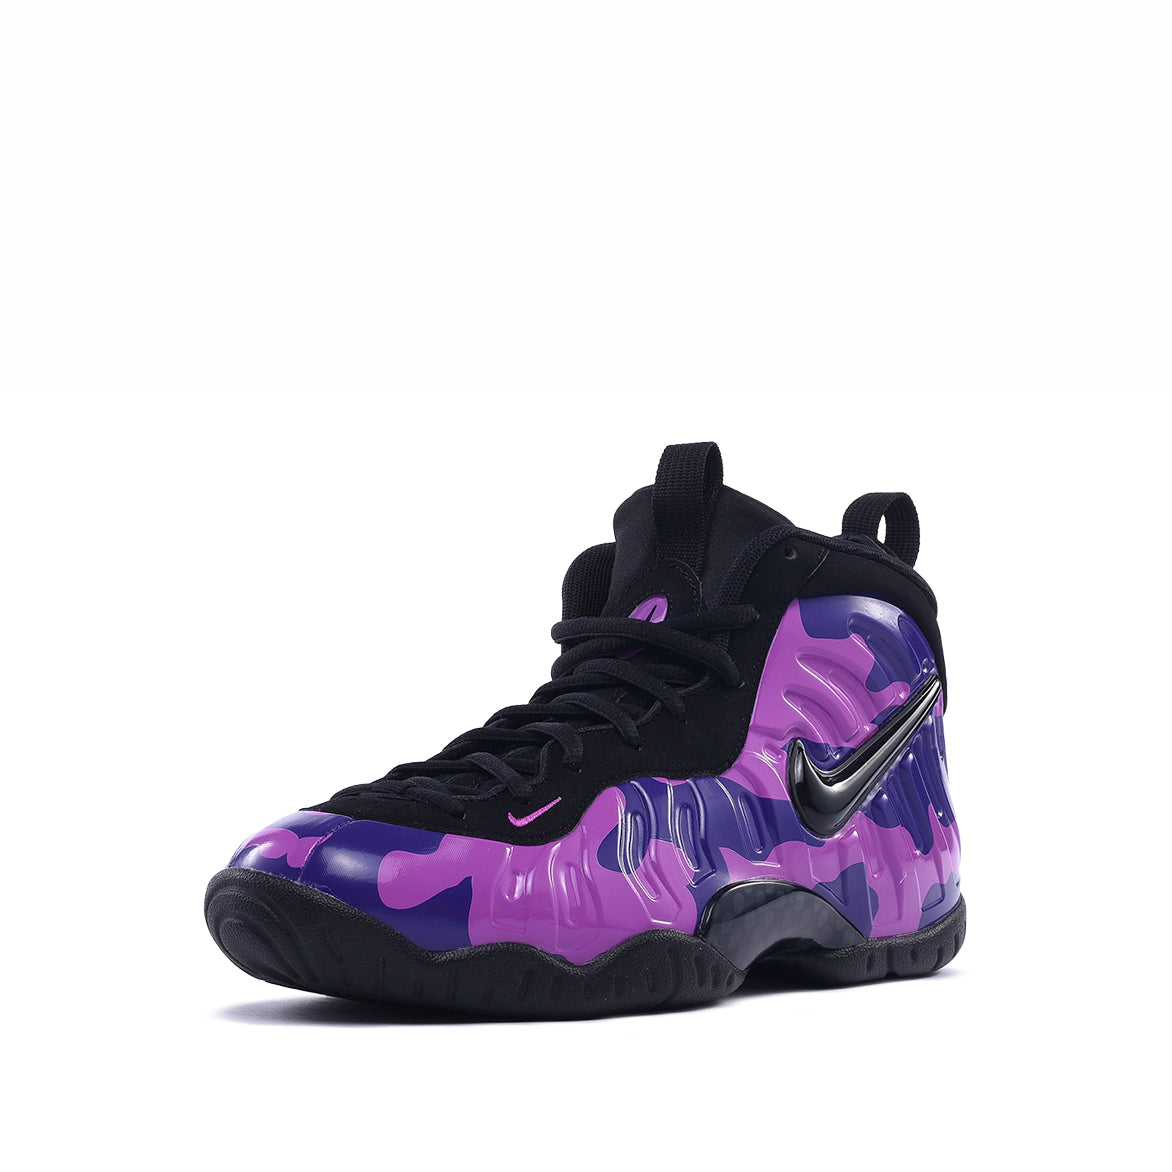 "LITTLE POSITE PRO ""COURT PURPLE"""